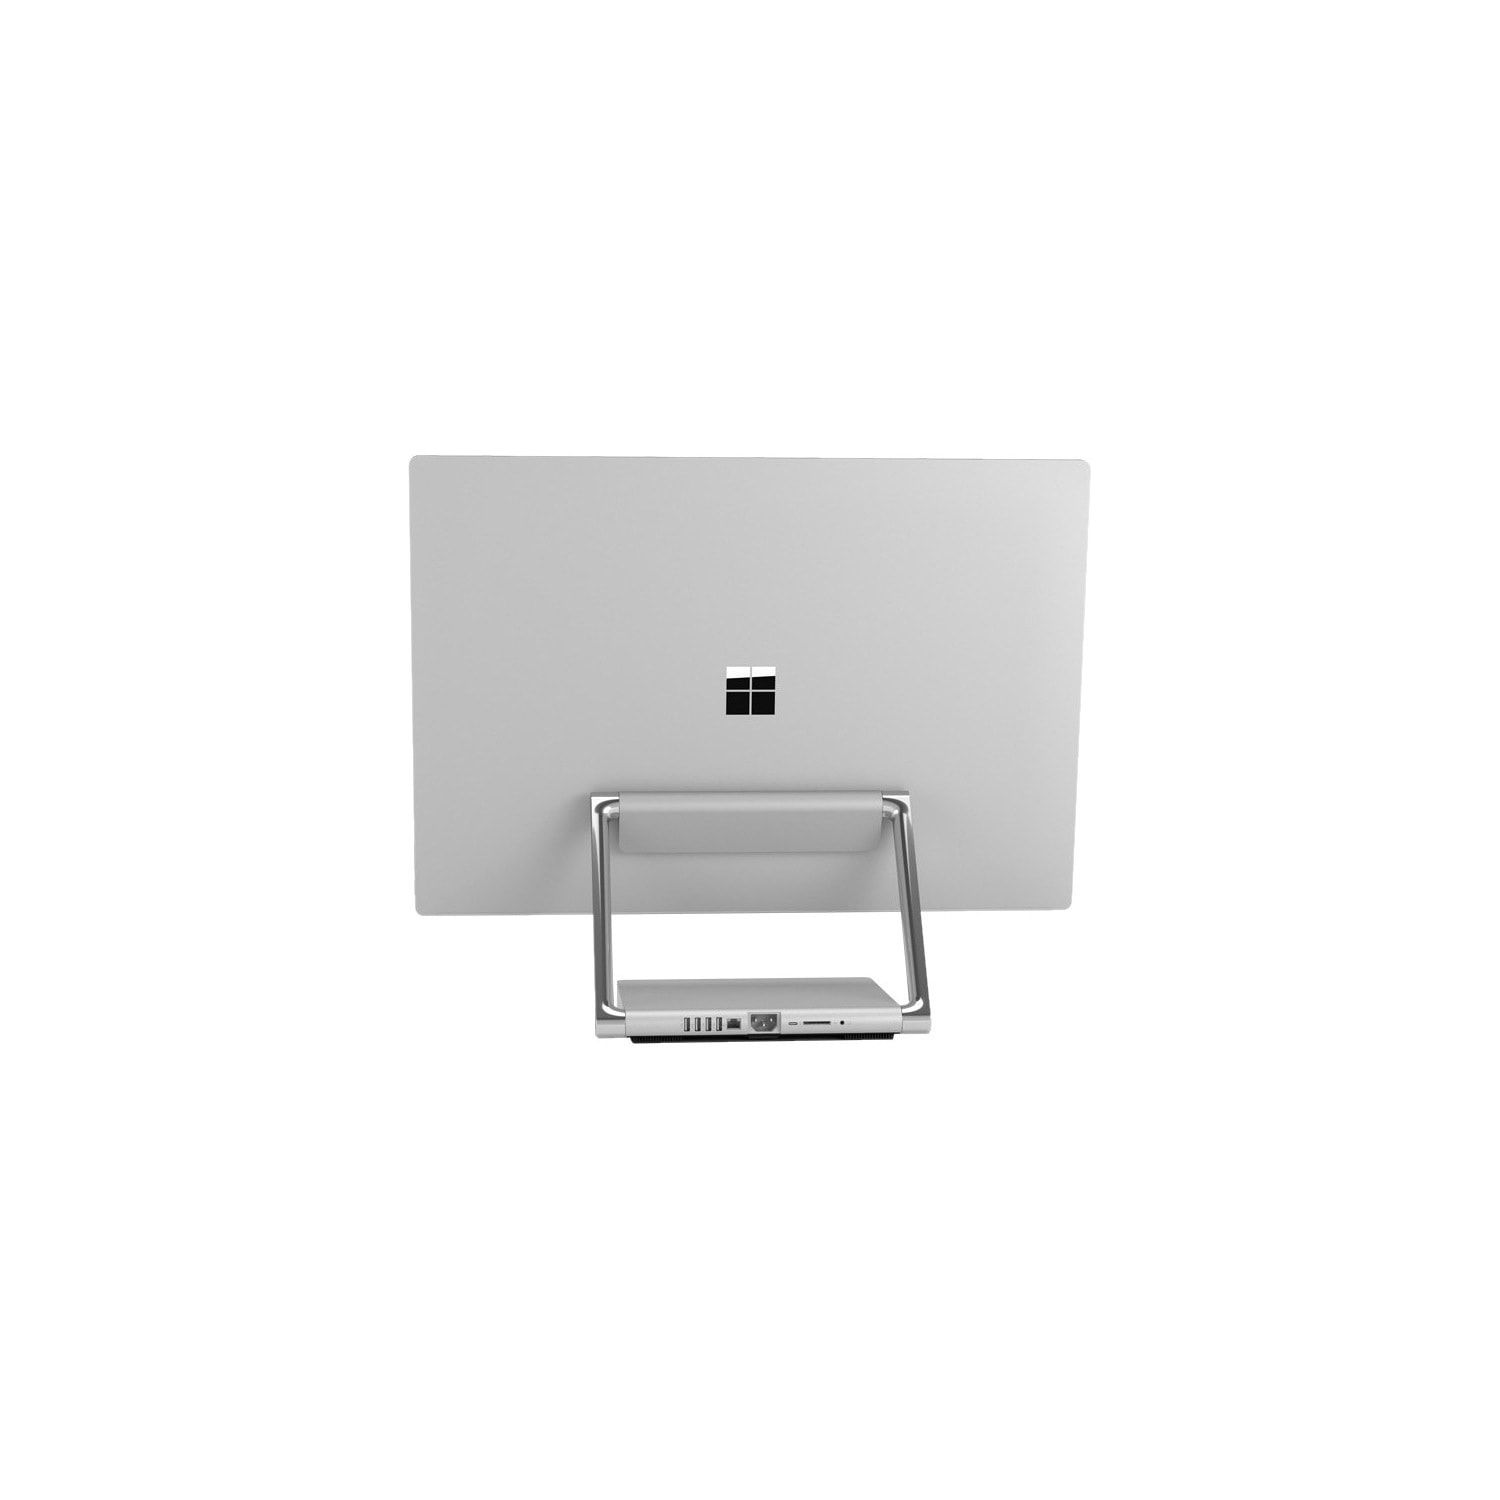 Buy Microsoft Surface Studio 2 VR Ready All-in-One Computer